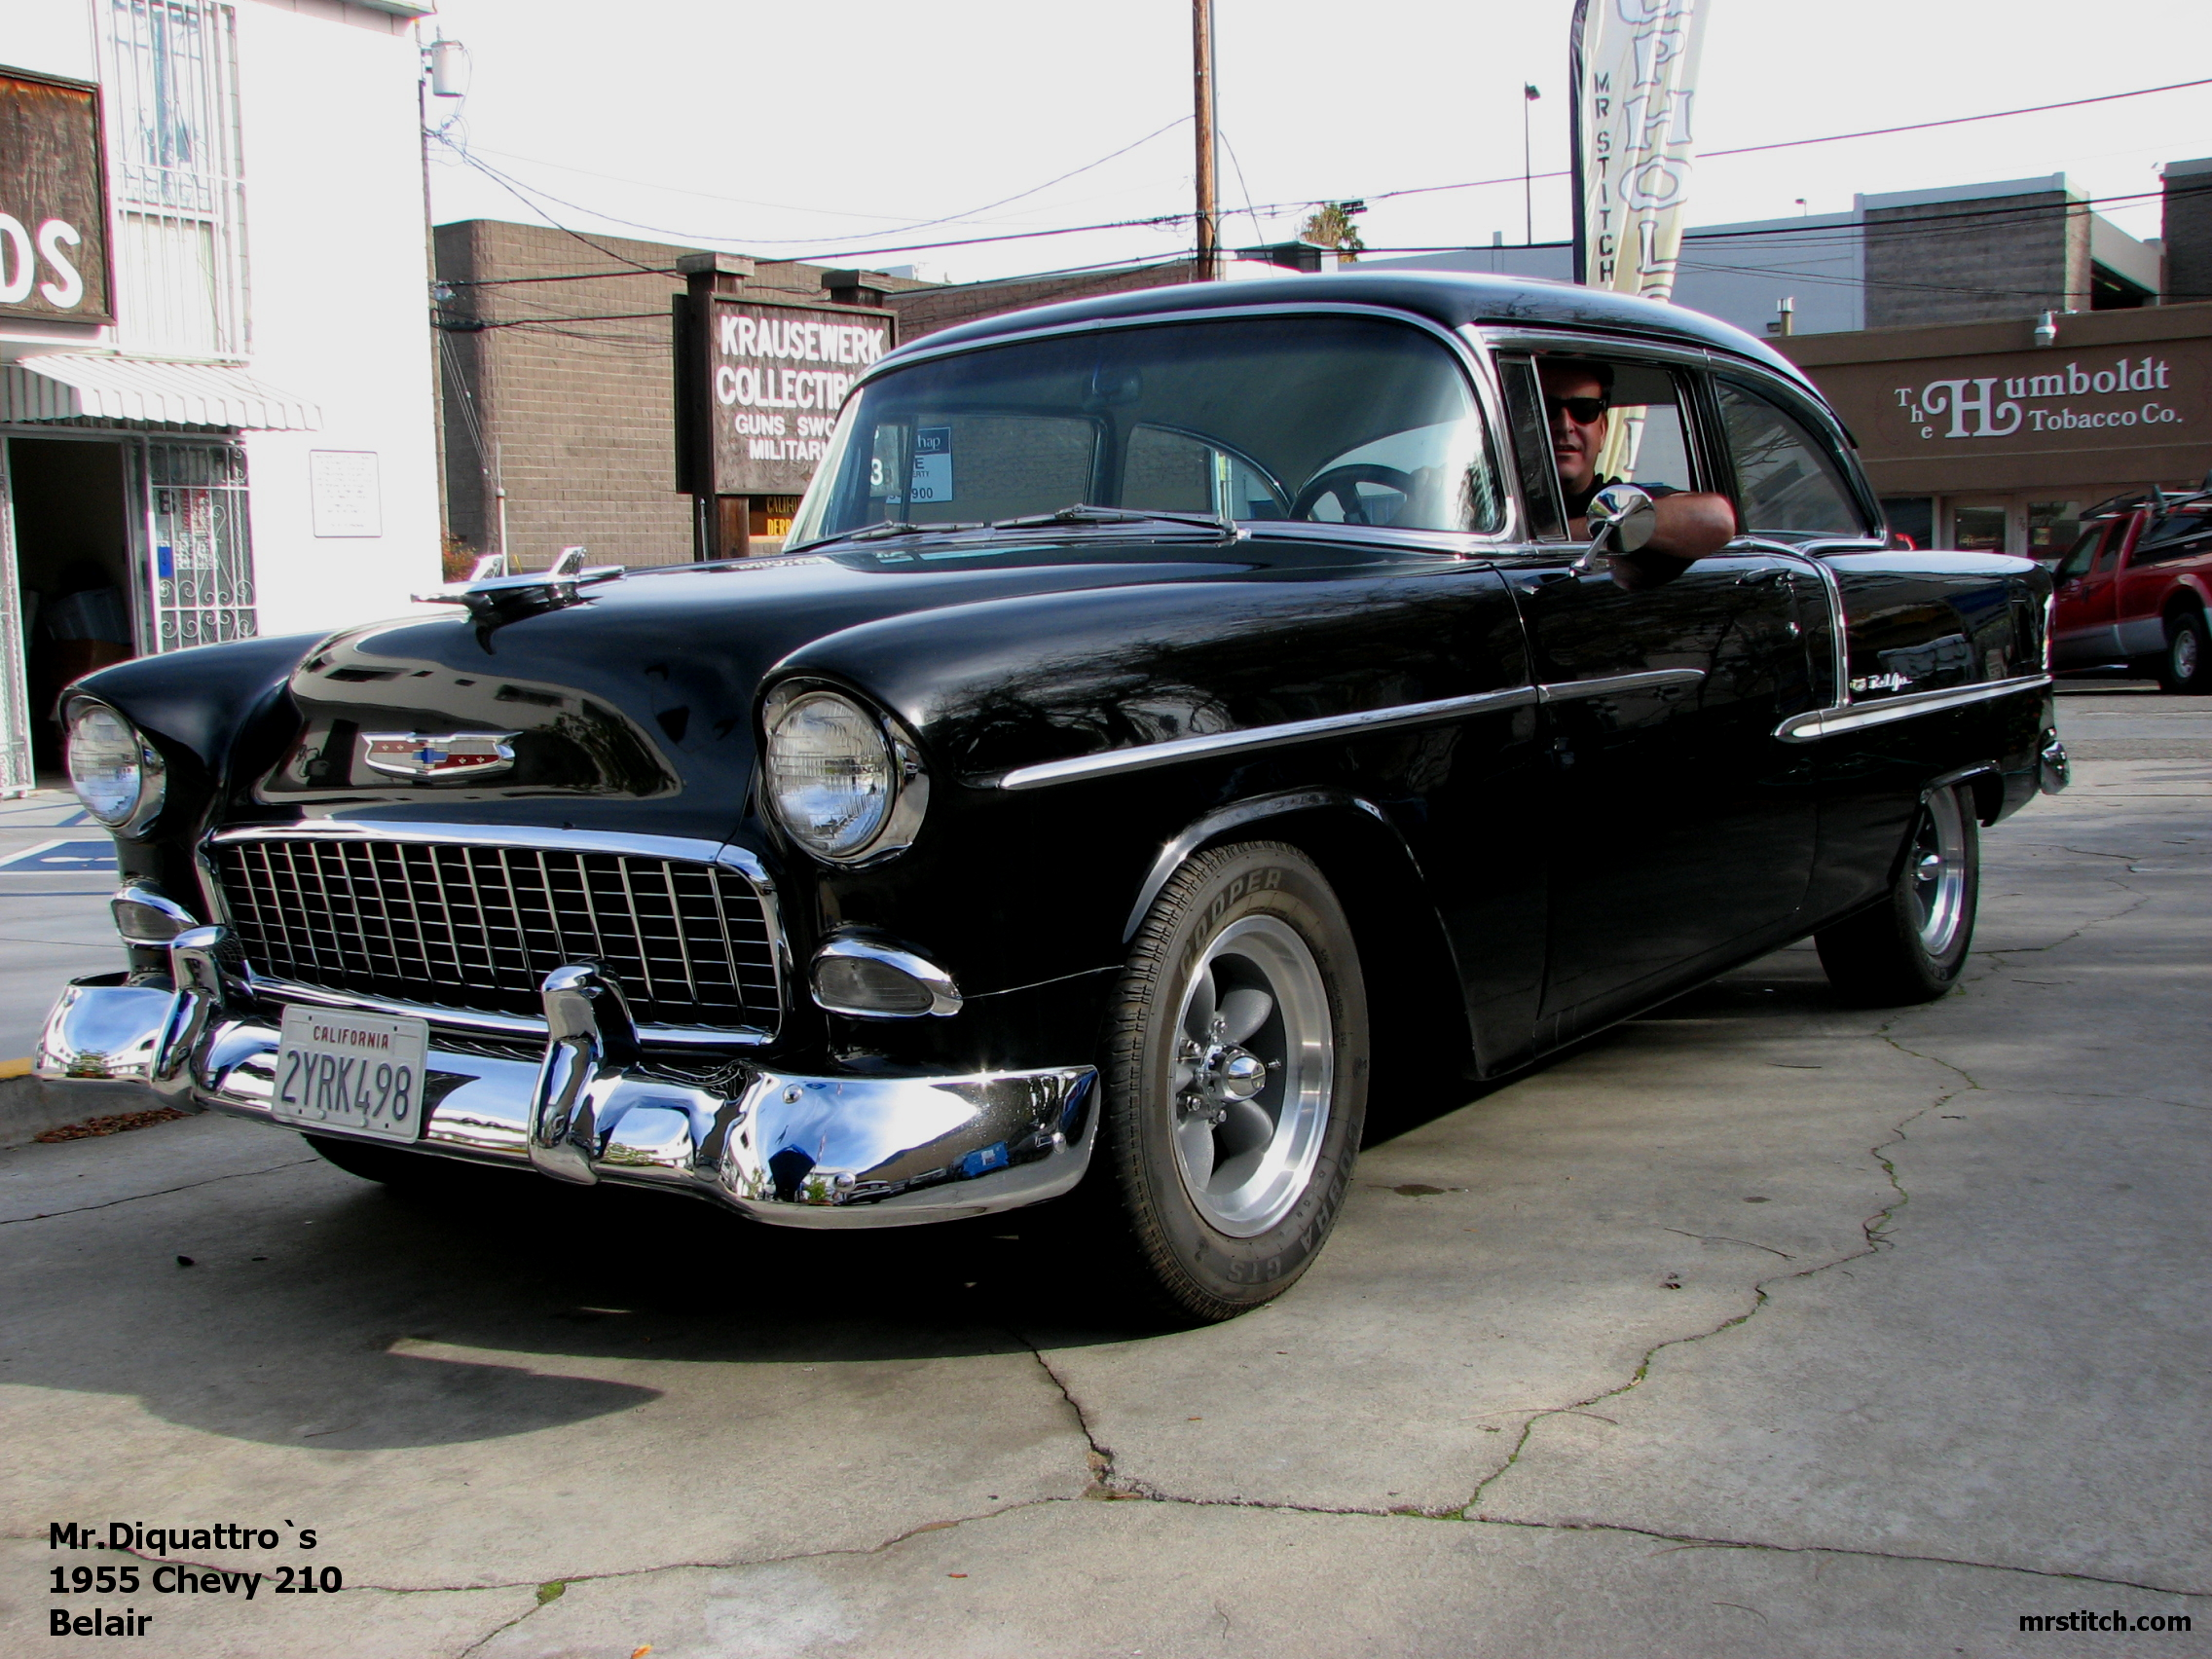 567 Chevy http://www.mrstitch.com/chevy_567.htm